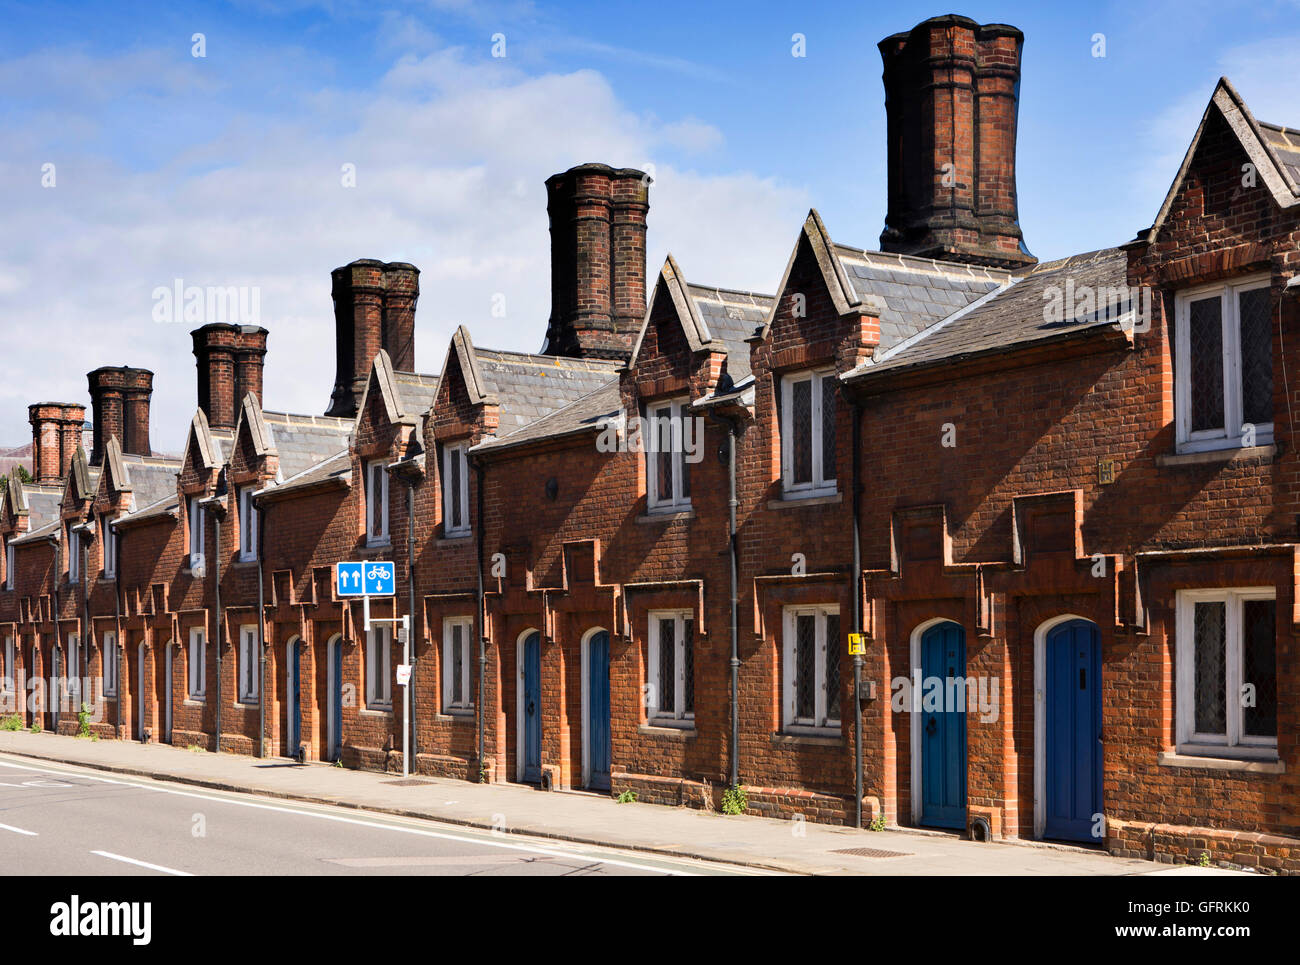 UK, England, Bedfordshire, Bedford, Dame Alice Street almshouse,s built by the Harpur Trust, between 1805-16 - Stock Image